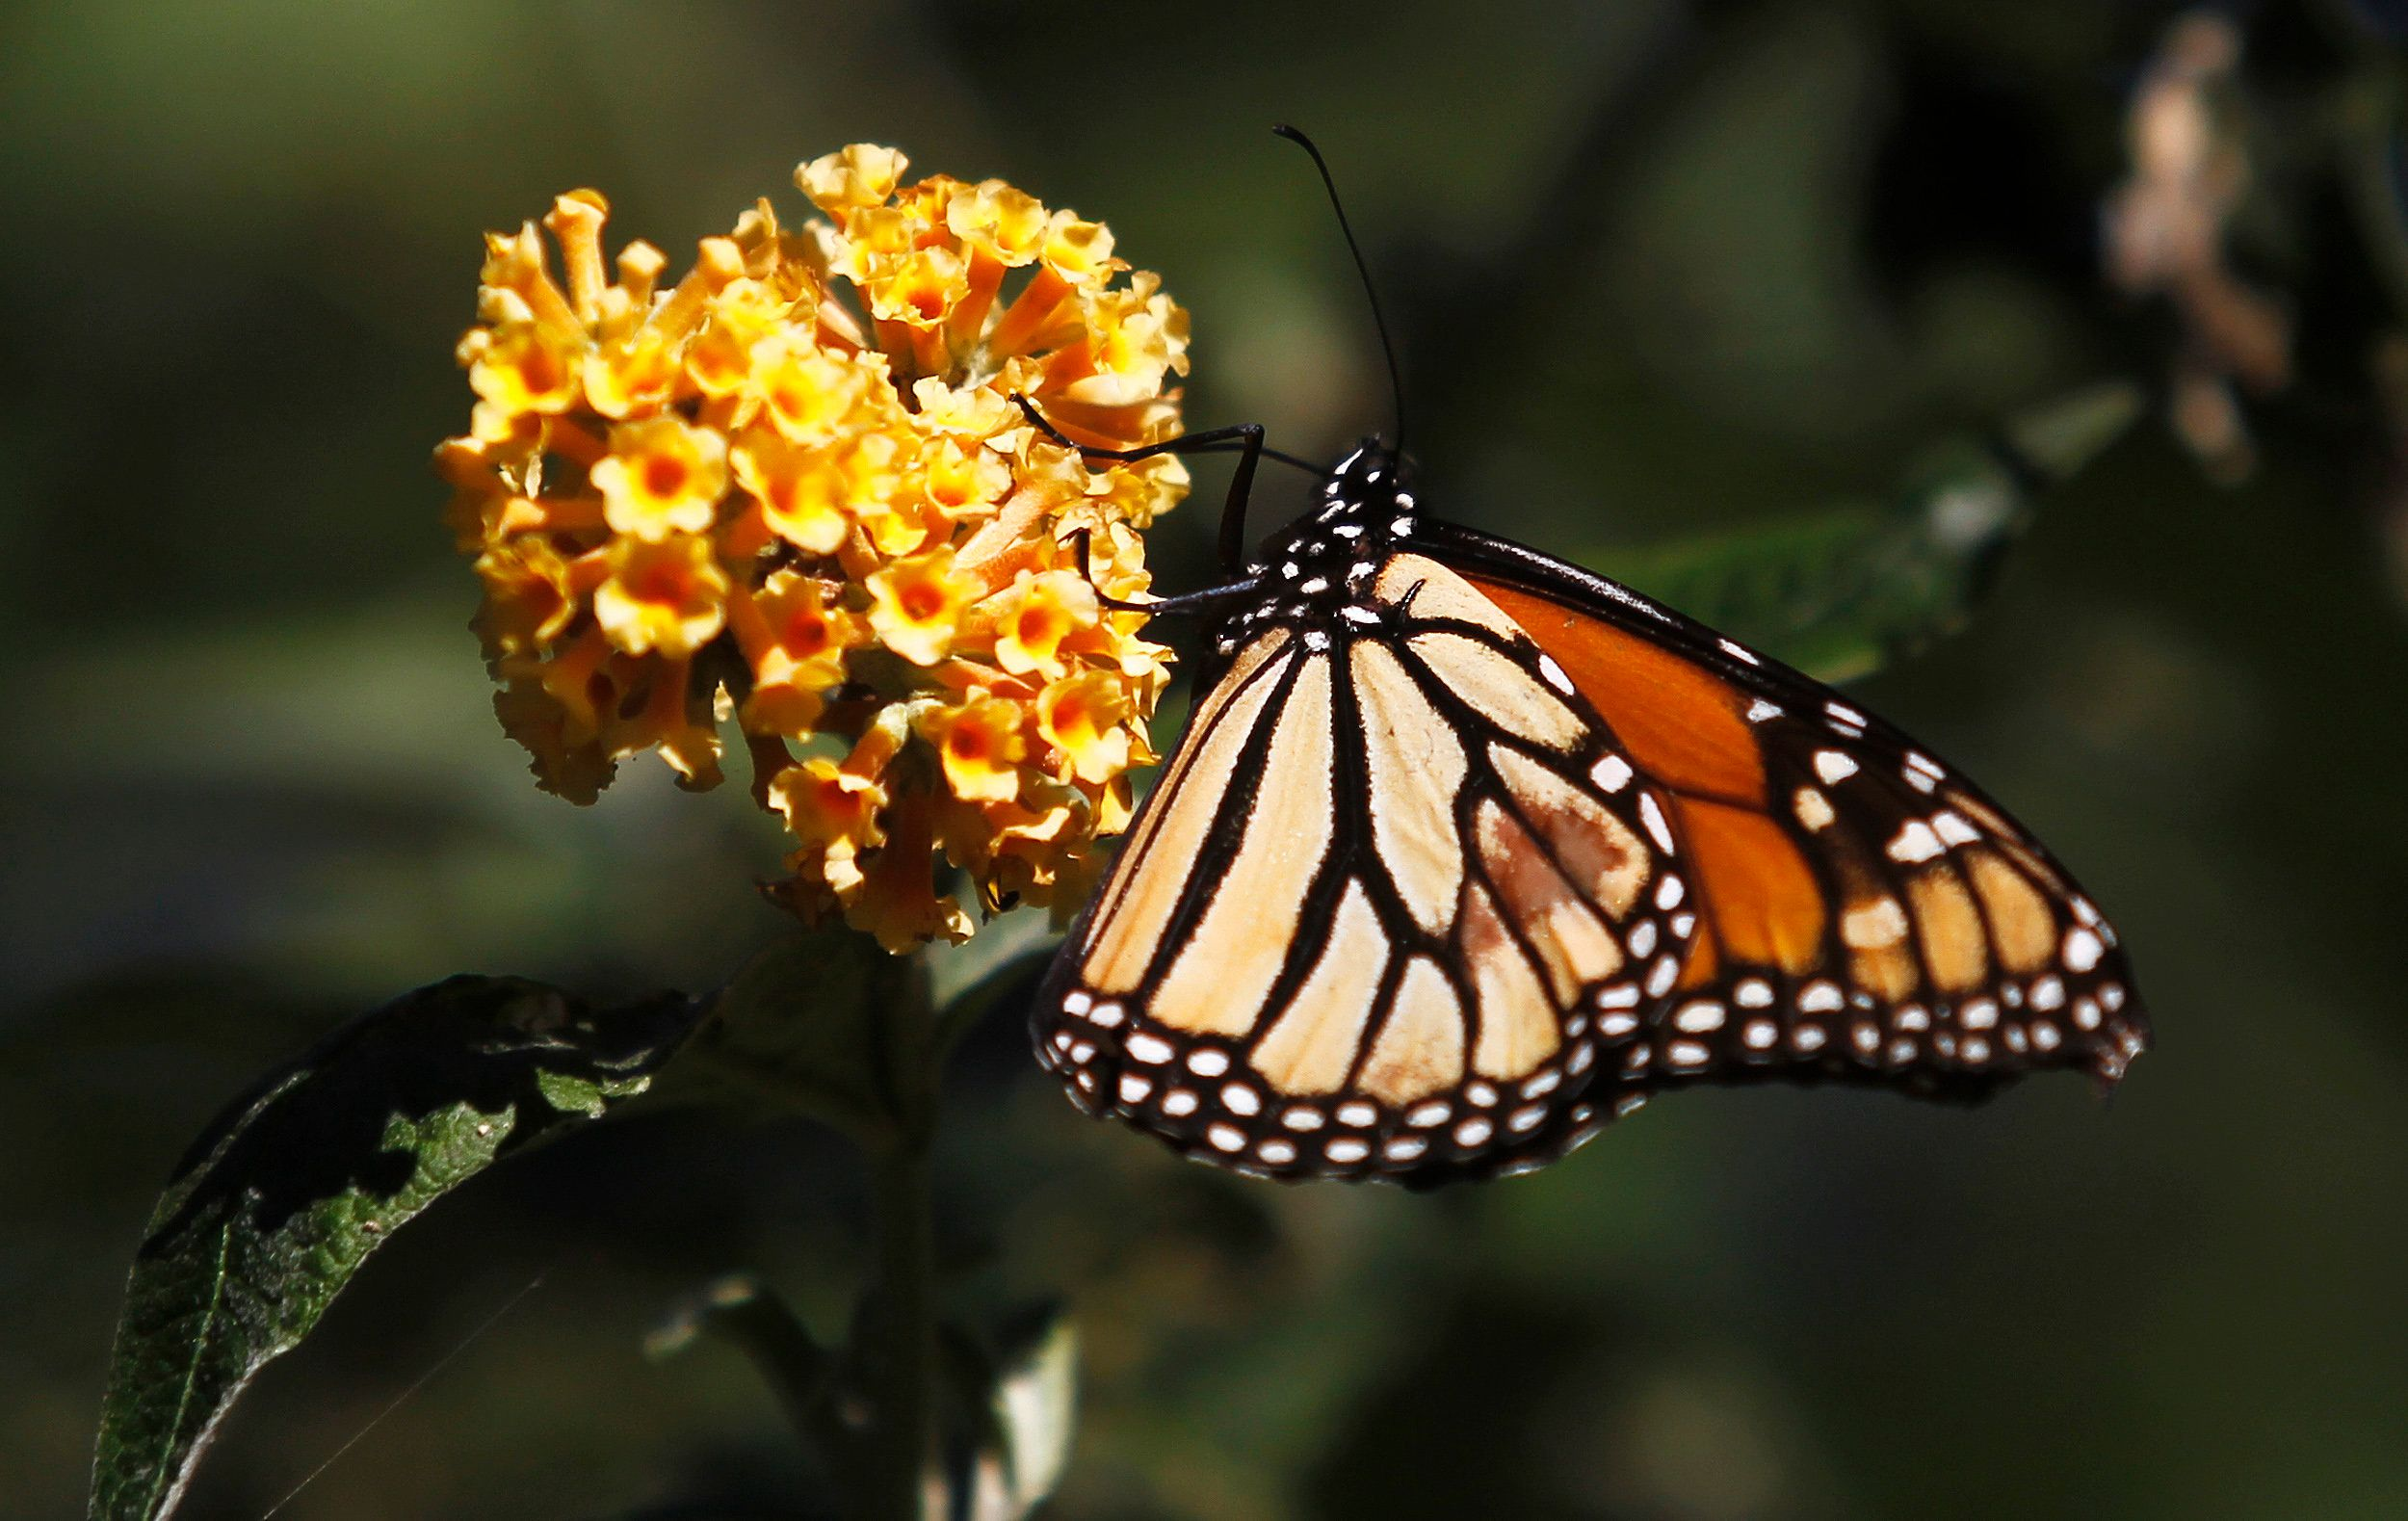 A monarch butterfly clings to a plant at the Monarch Grove Sanctuary in Pacific Grove, California, December 30, 2014. Monarch butterflies may warrant U.S. Endangered Species Act protection because of farm-related habitat loss blamed for sharp declines in cross-country migrations of the orange-and-black insects, the U.S. Fish and Wildlife Service said. REUTERS/Michael Fiala (UNITED STATES - Tags: ANIMALS ENVIRONMENT POLITICS)